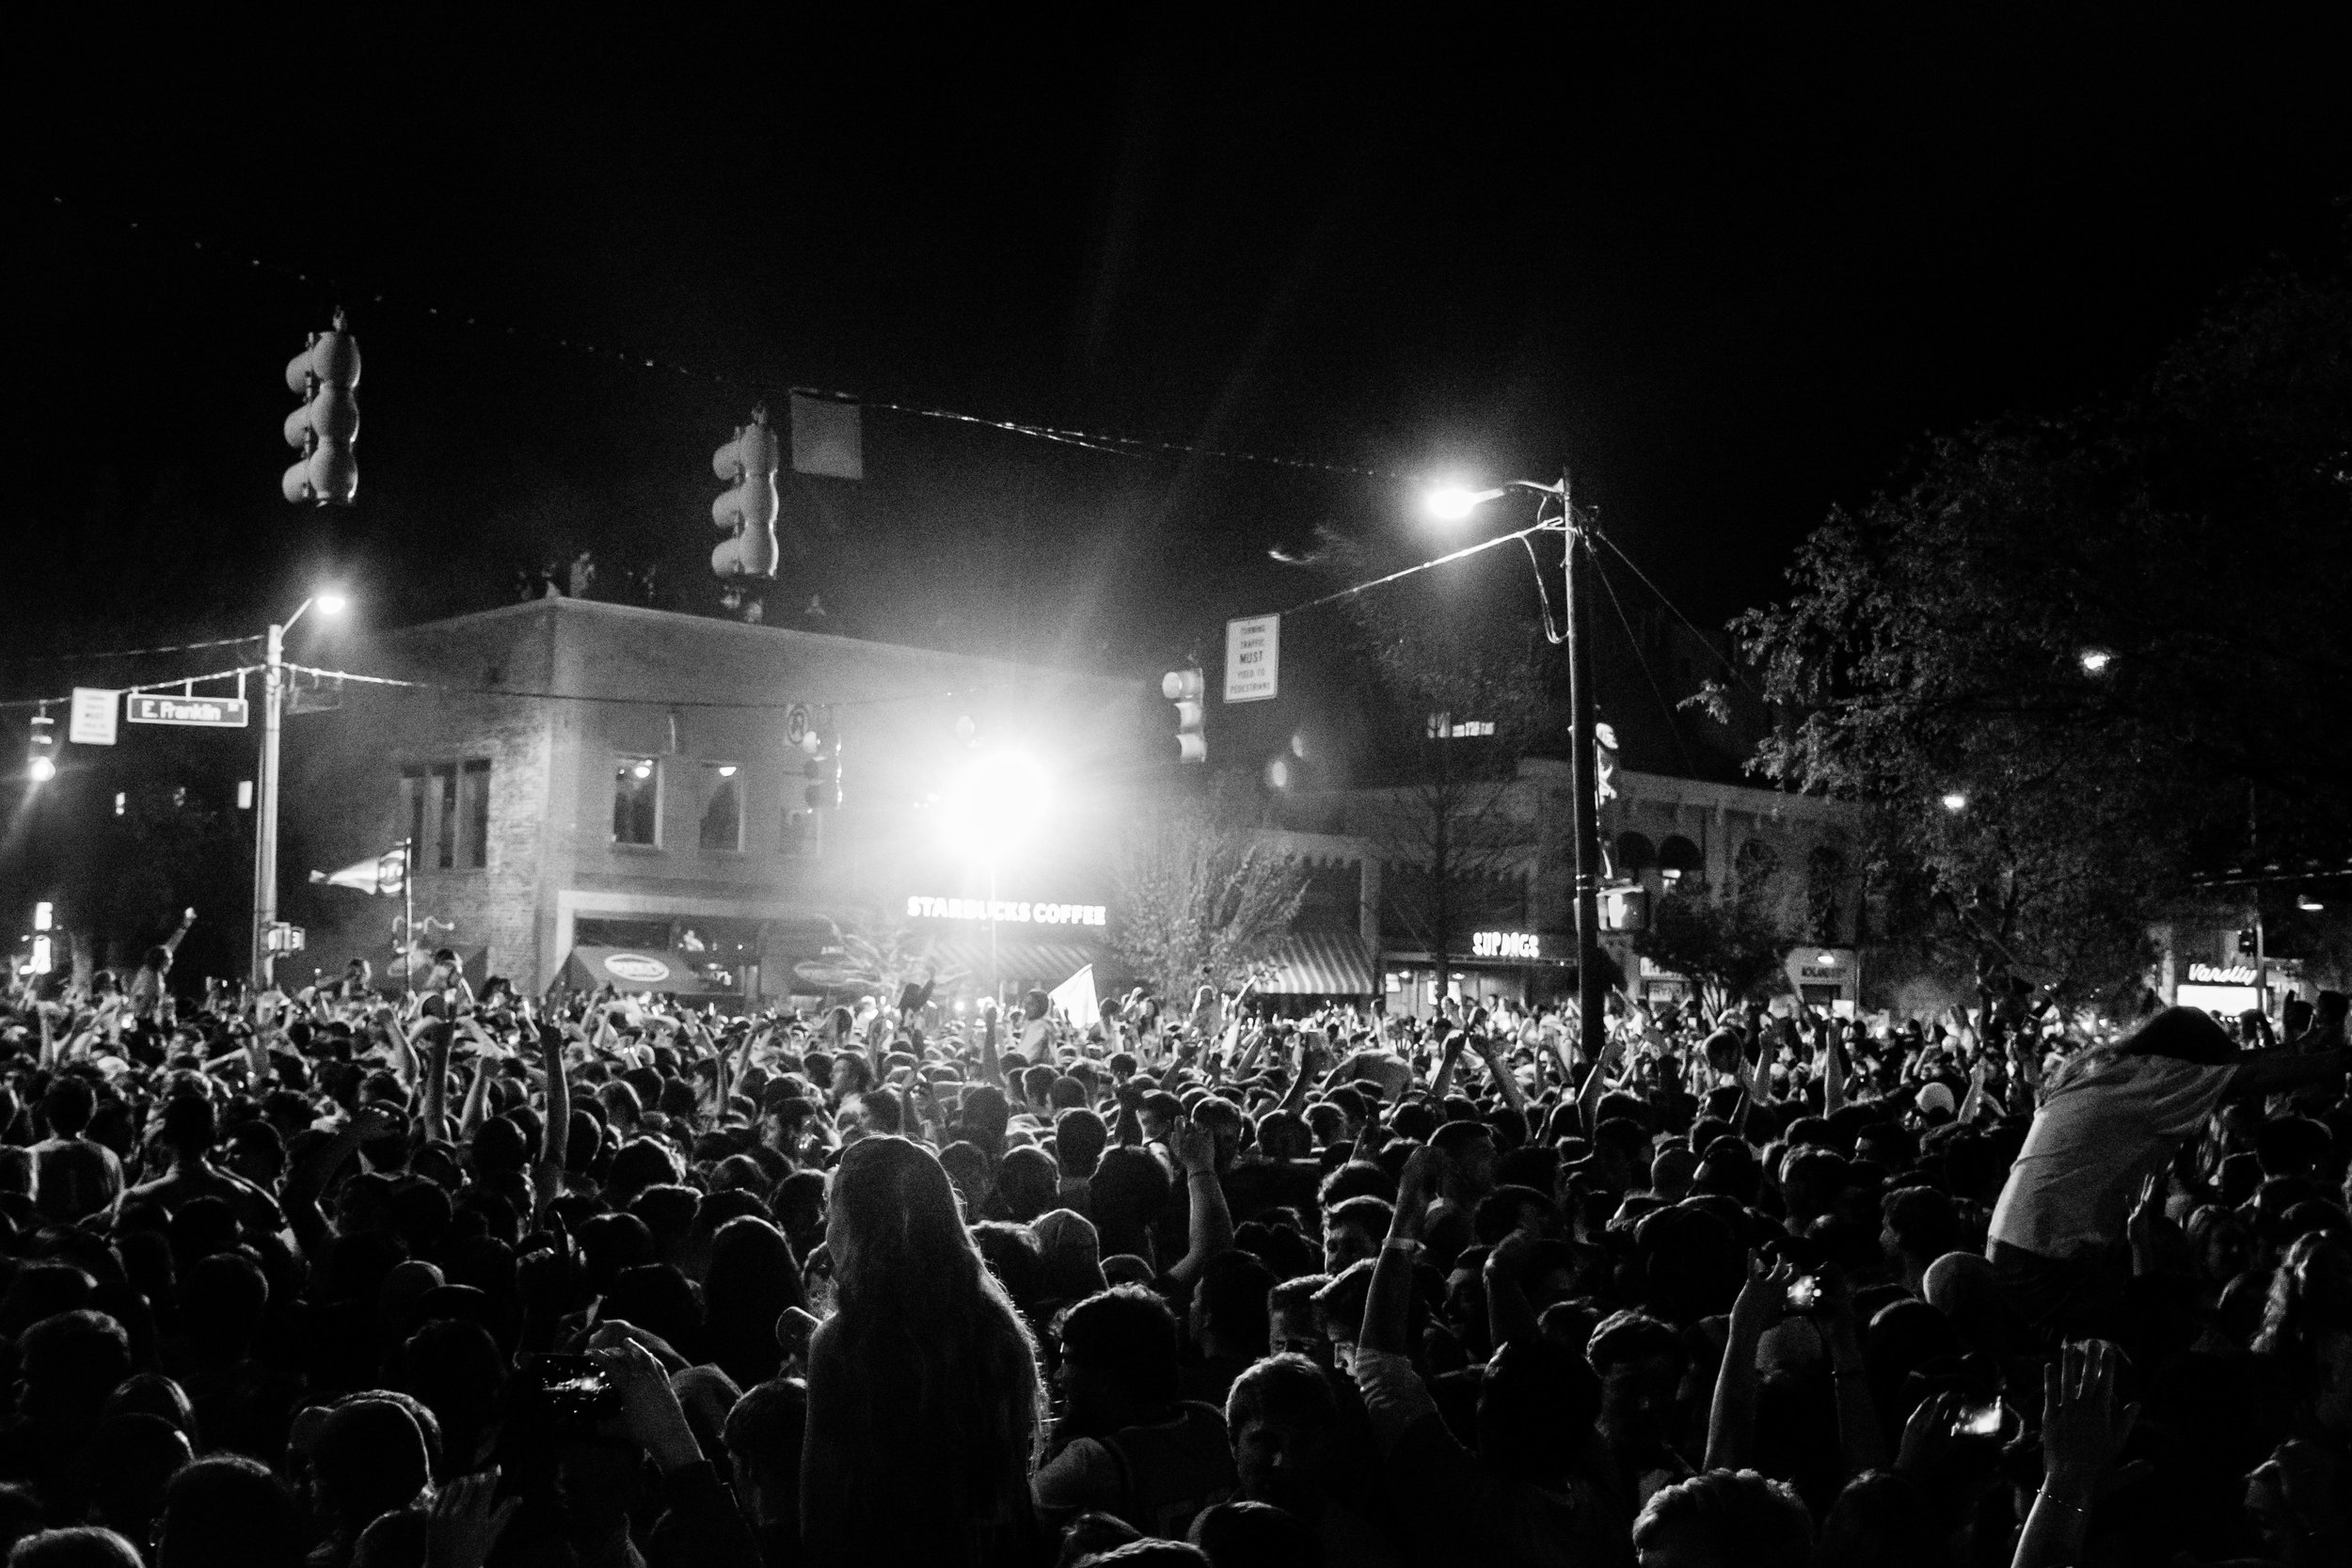 franklin street after unc defeated gonzaga in the 2017 men's basketball national championship game